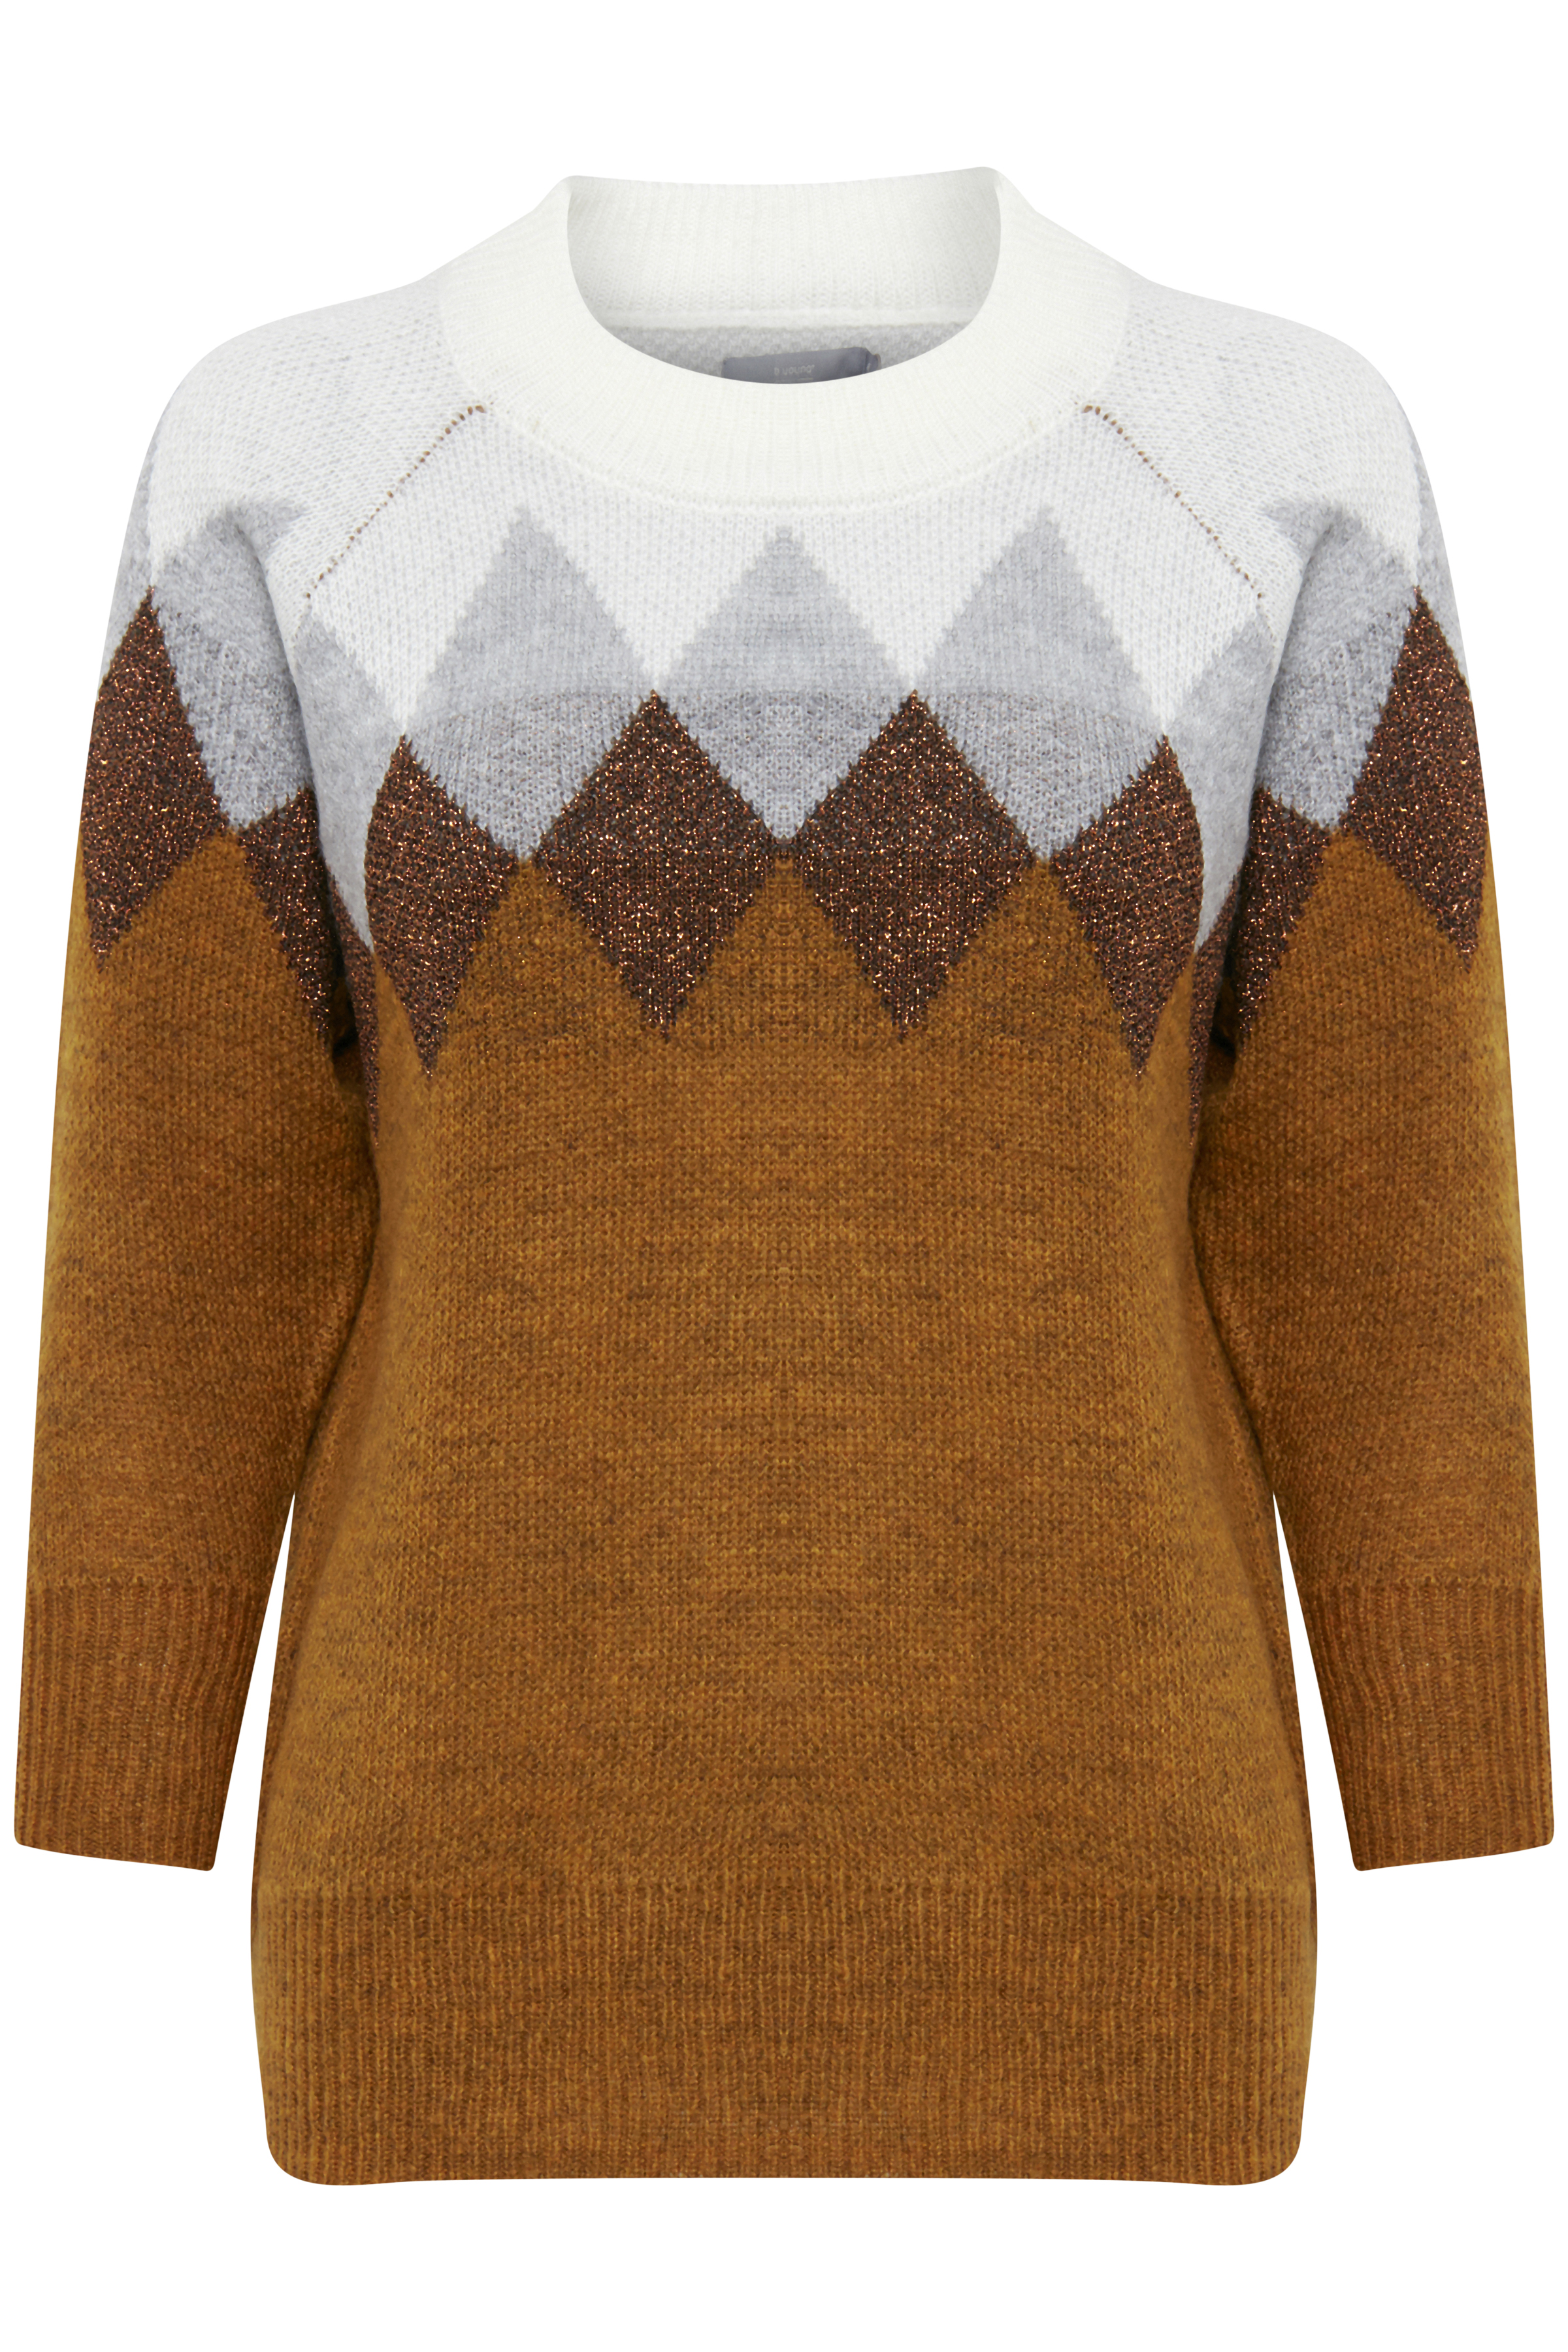 Golden Toffee Combi Strikpullover fra b.young – Køb Golden Toffee Combi Strikpullover fra str. XS-XXL her